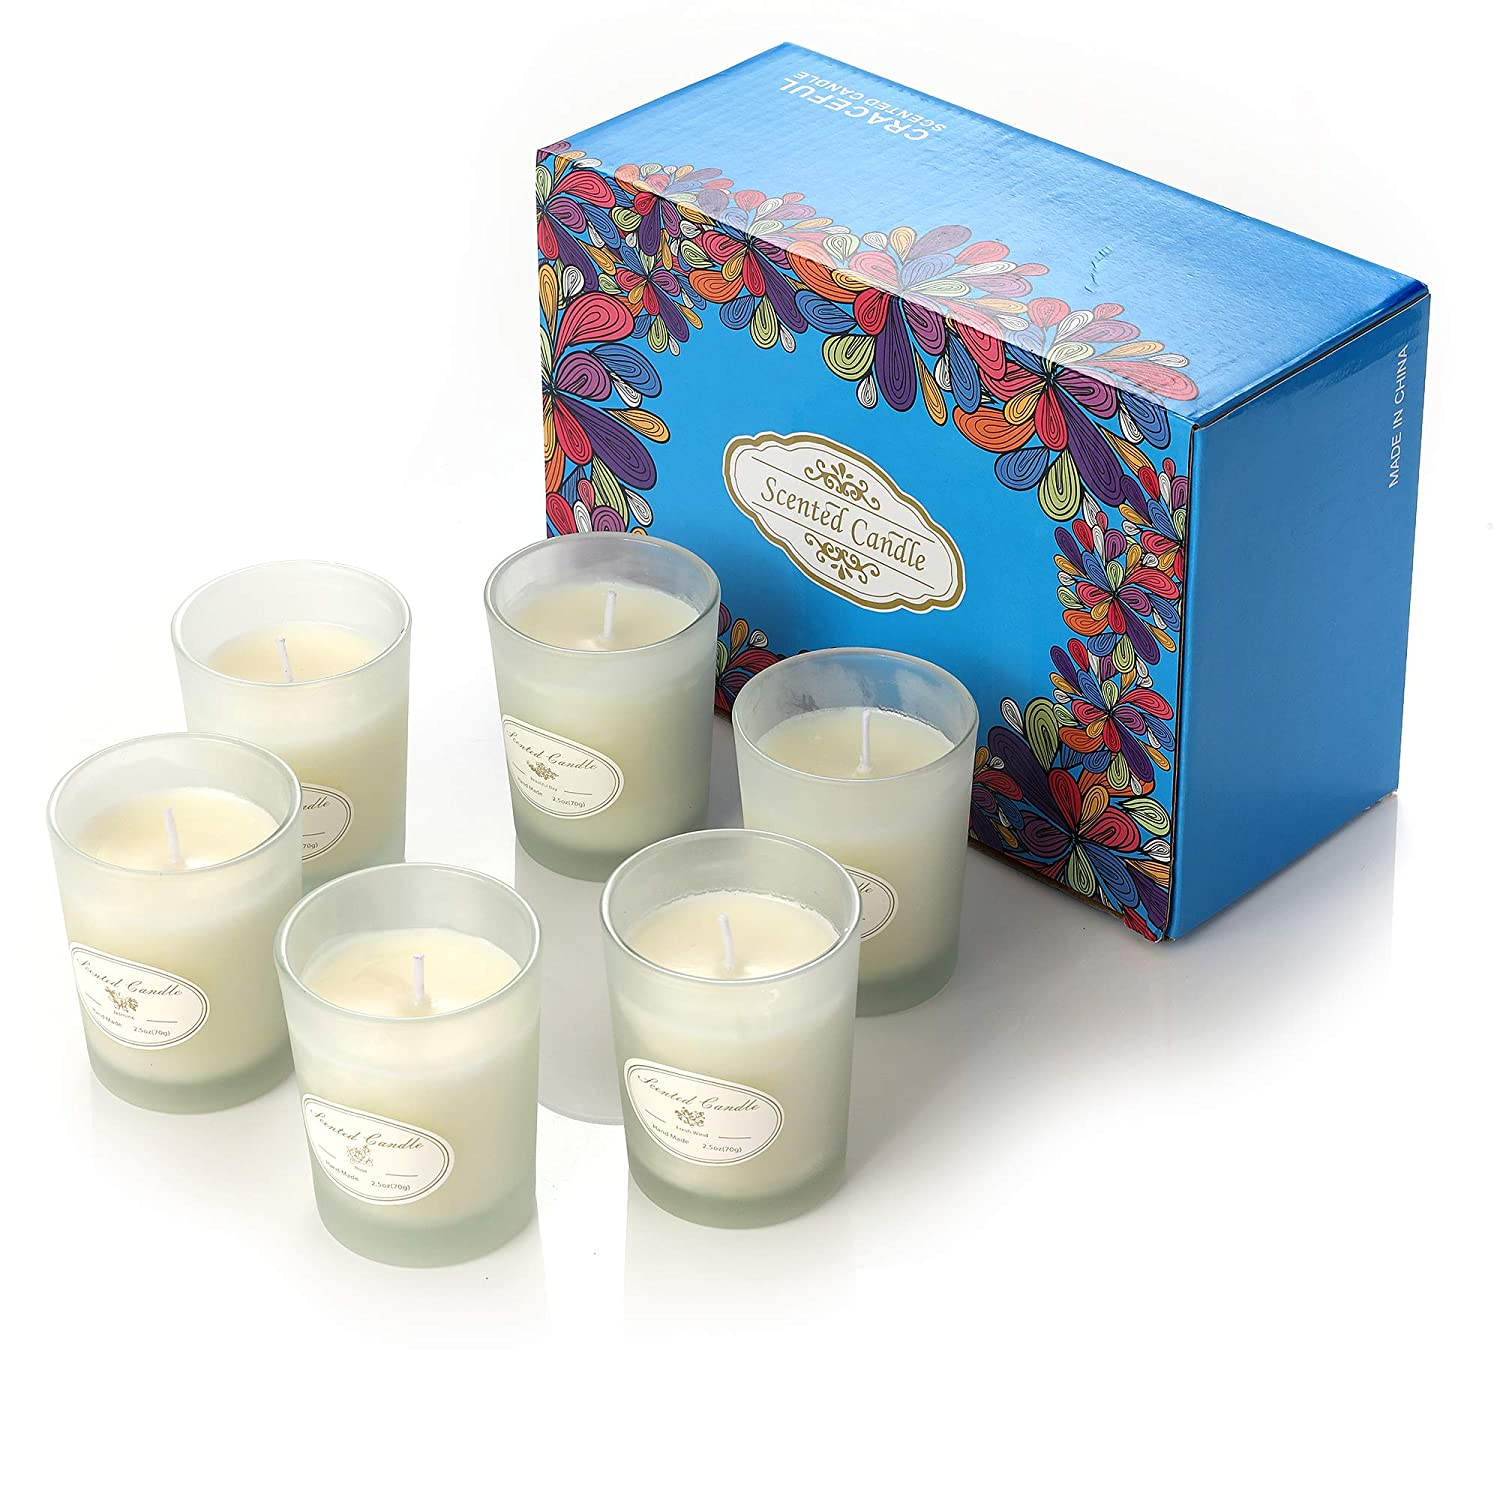 8 x 4.4 Oz Gift Set Natural Soy Wax Scented Candles with Smoke Free Relaxing and Lasting Fragrance for Festival Gift Bath Relaxation Home Decor Aromatherapy Candles